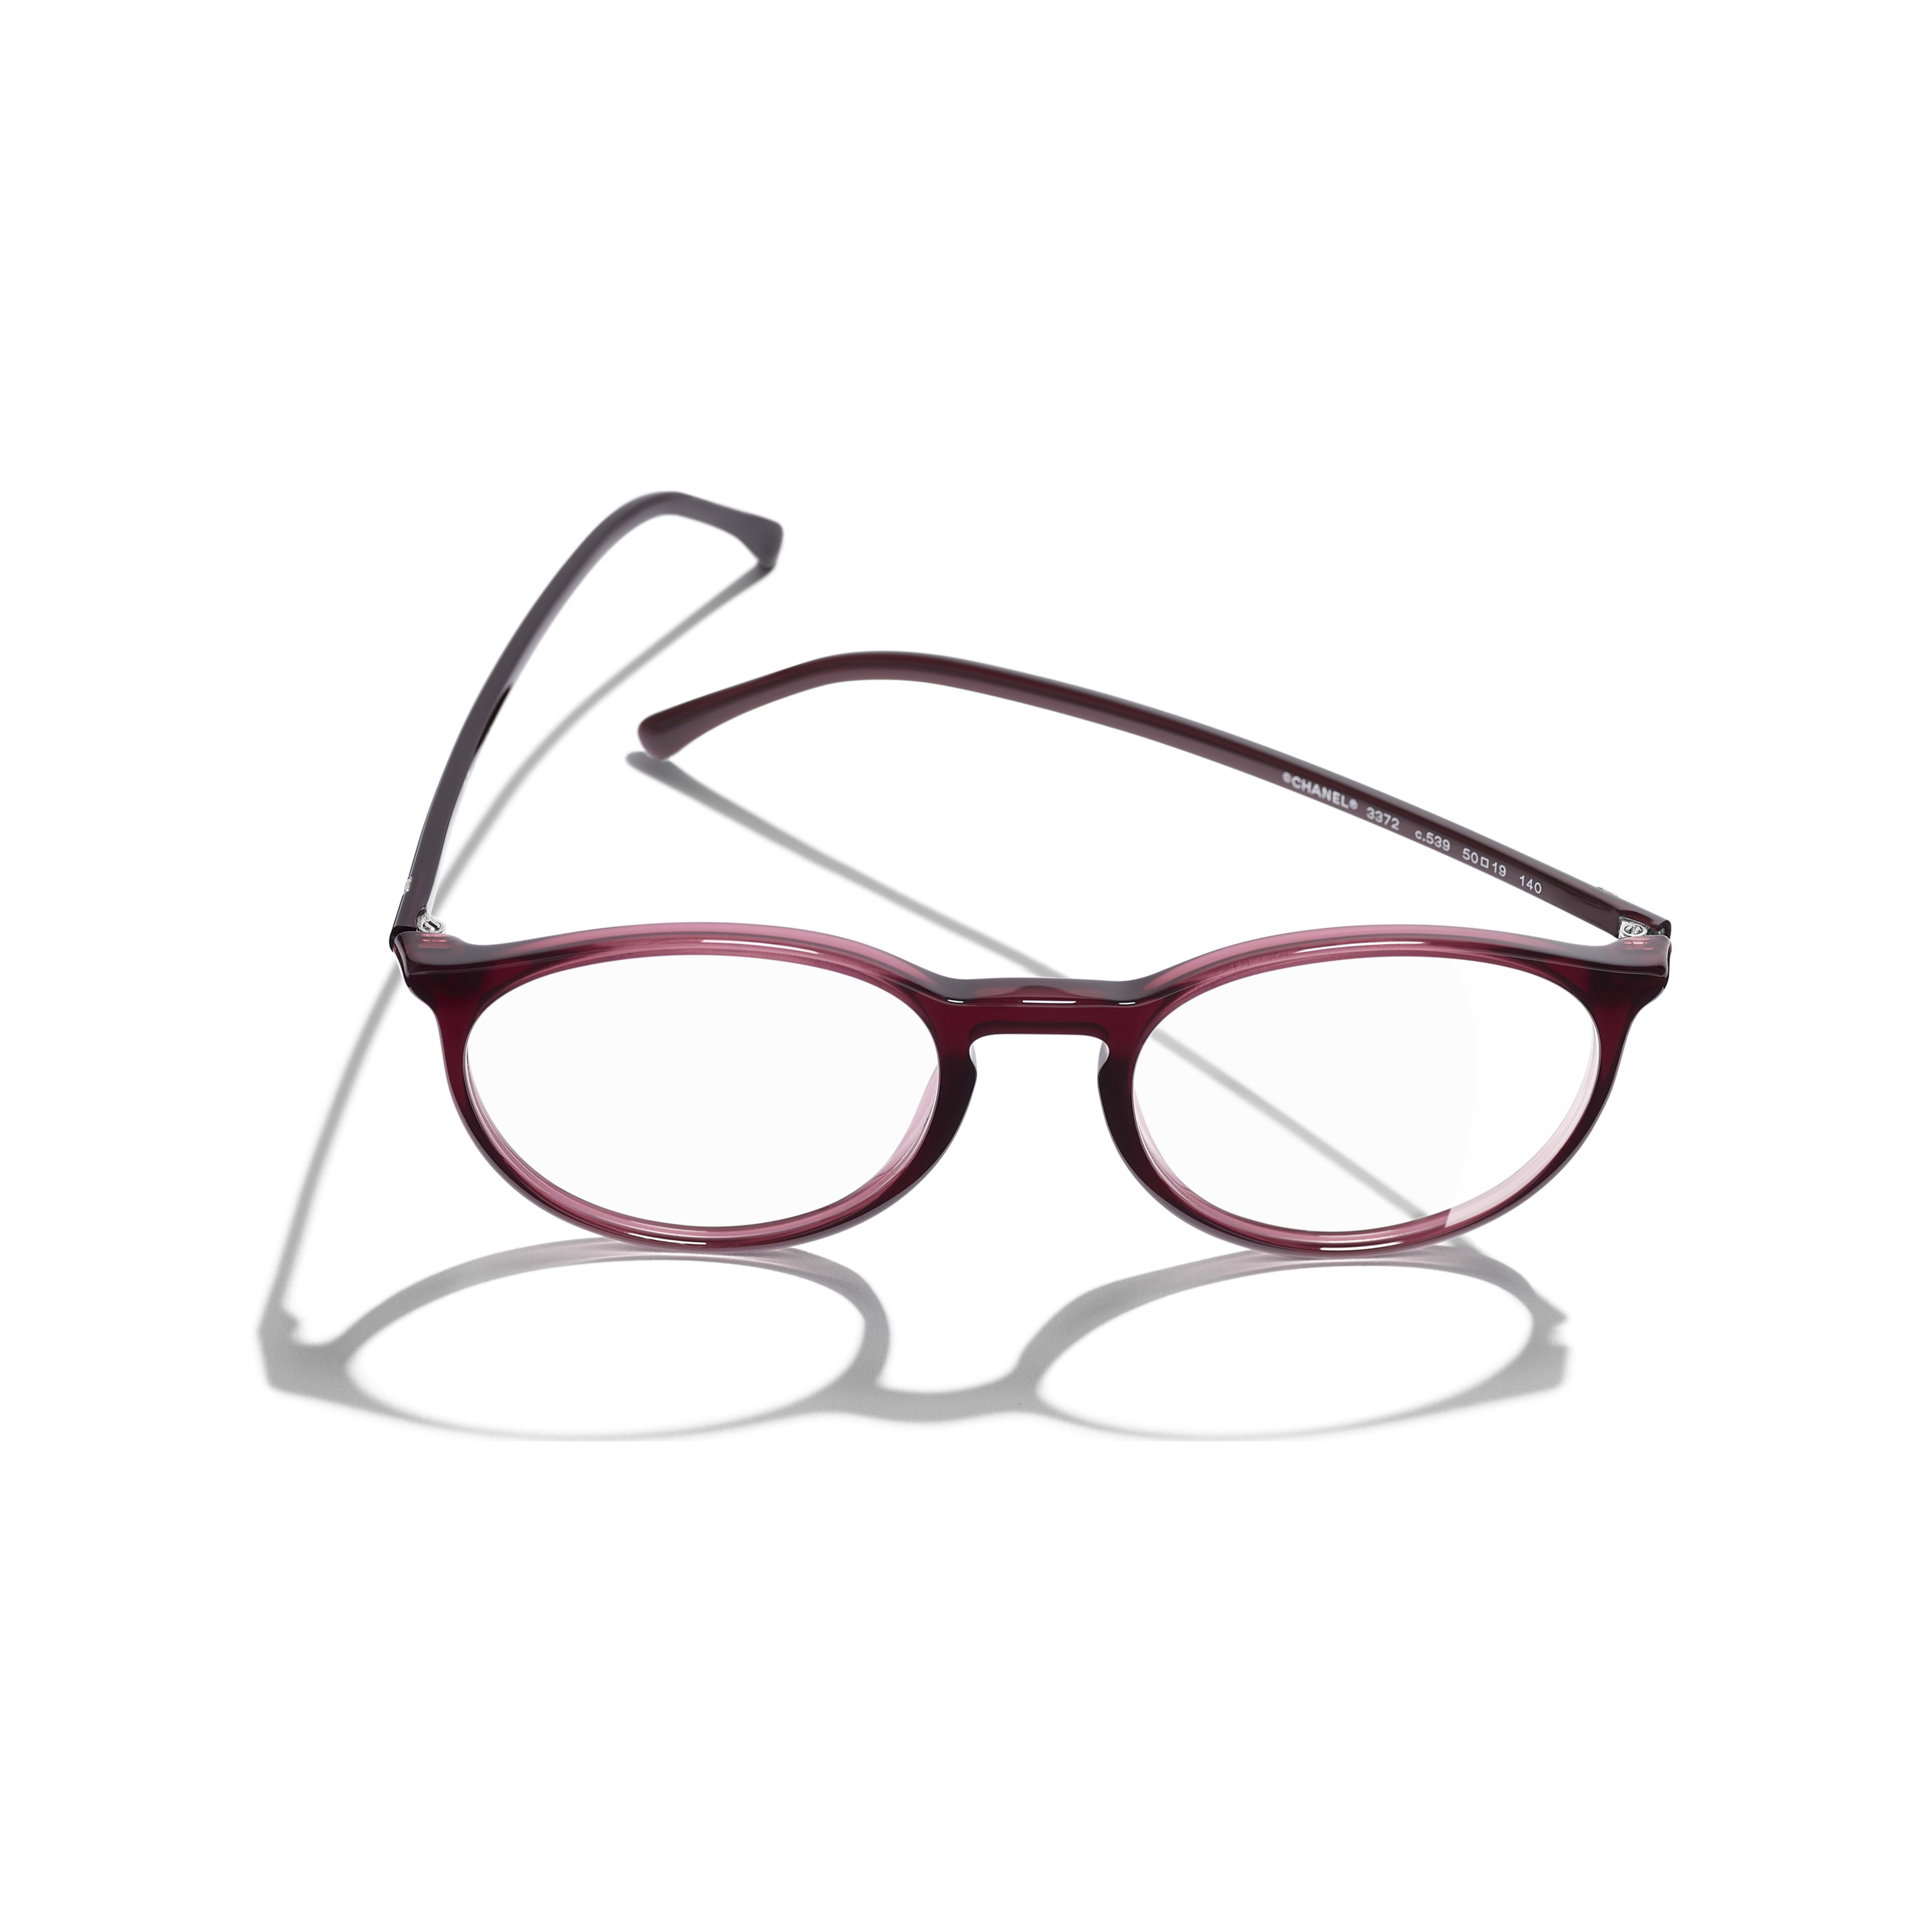 Pantos Eyeglasses - Red - Acetate - CHANEL - Extra view - see standard sized version